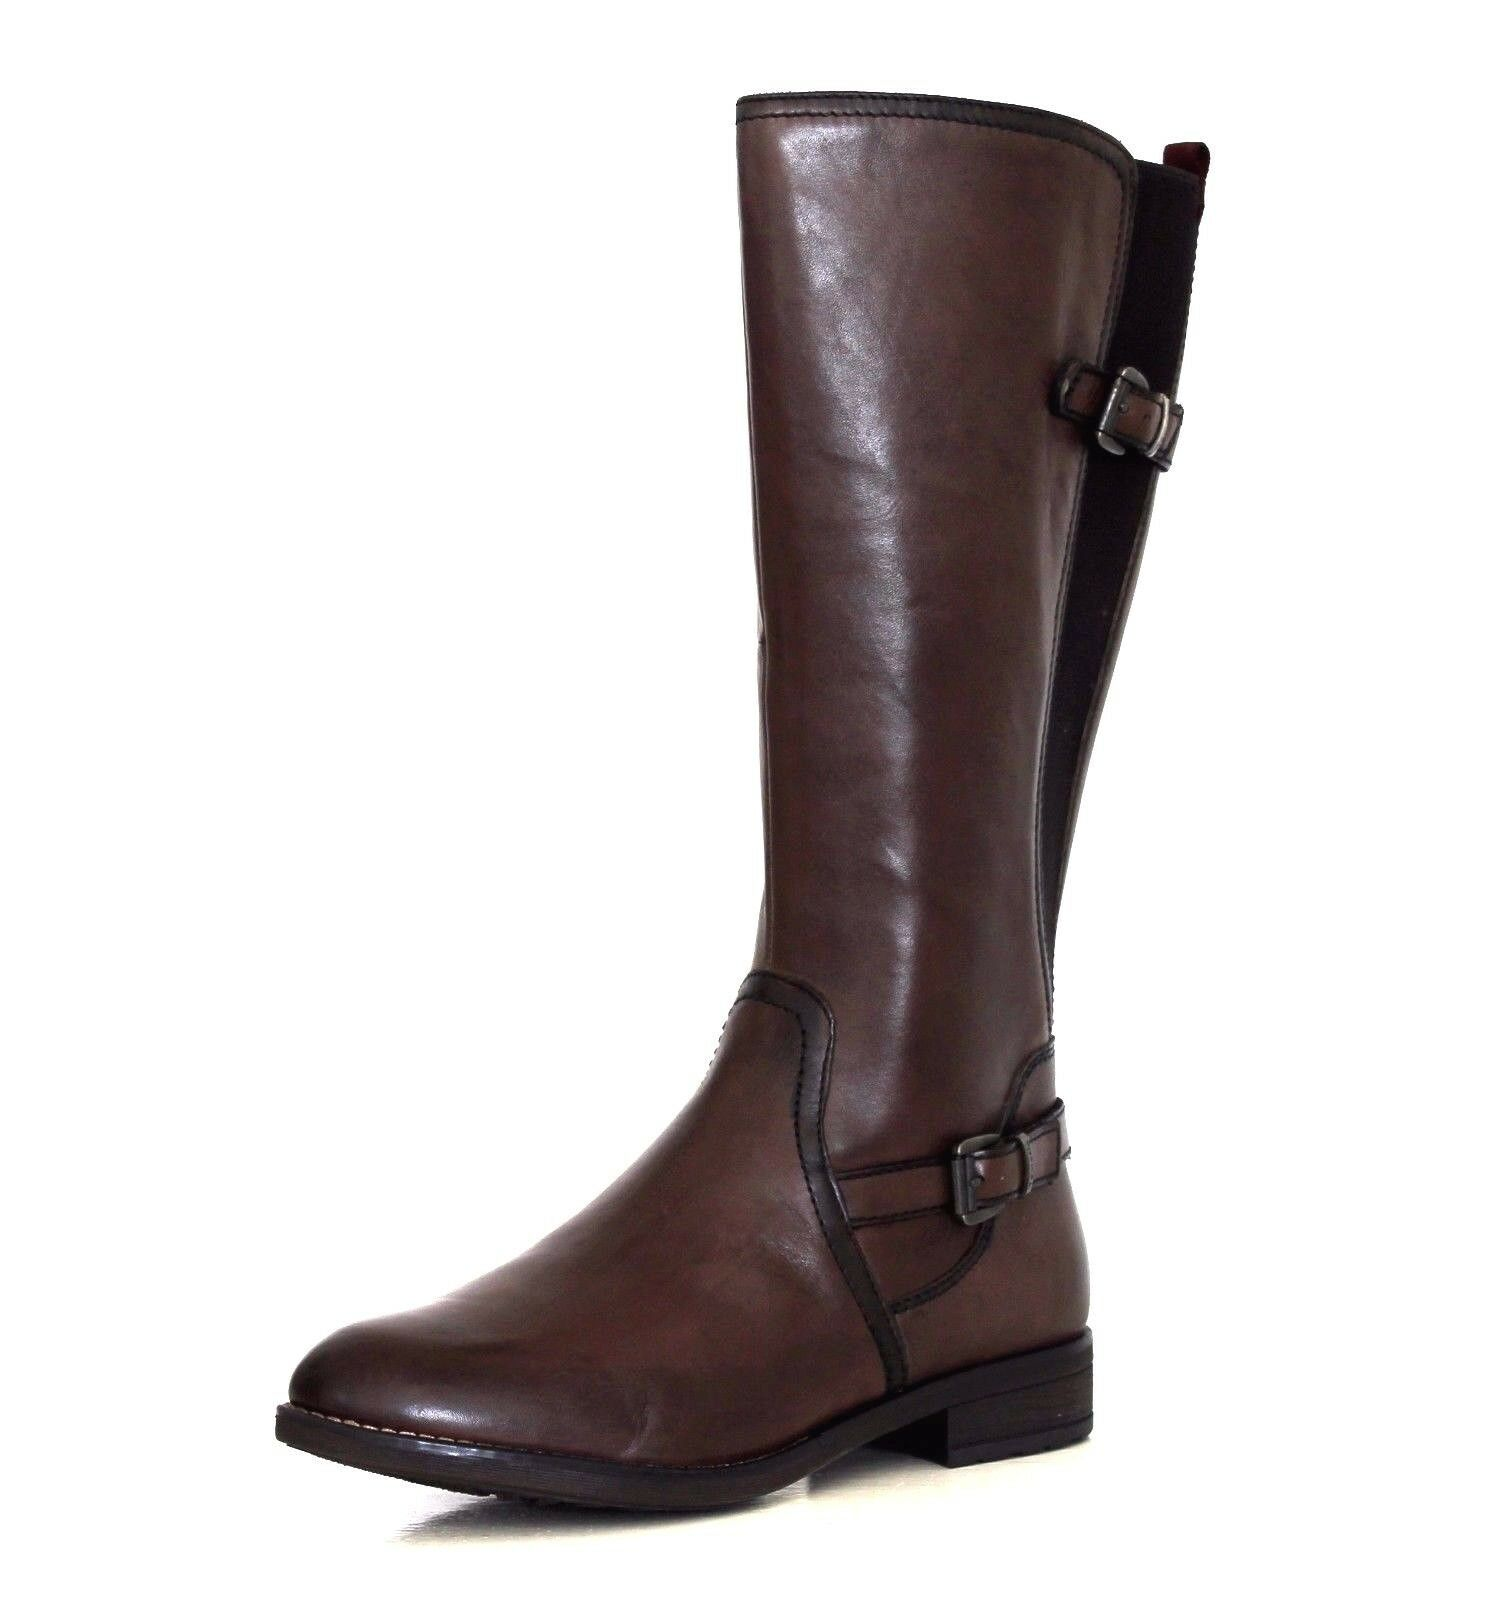 Tamaris Women's UK 4 to 5.5 Cigar Brown Leather Zip Up Biker Style New Boots